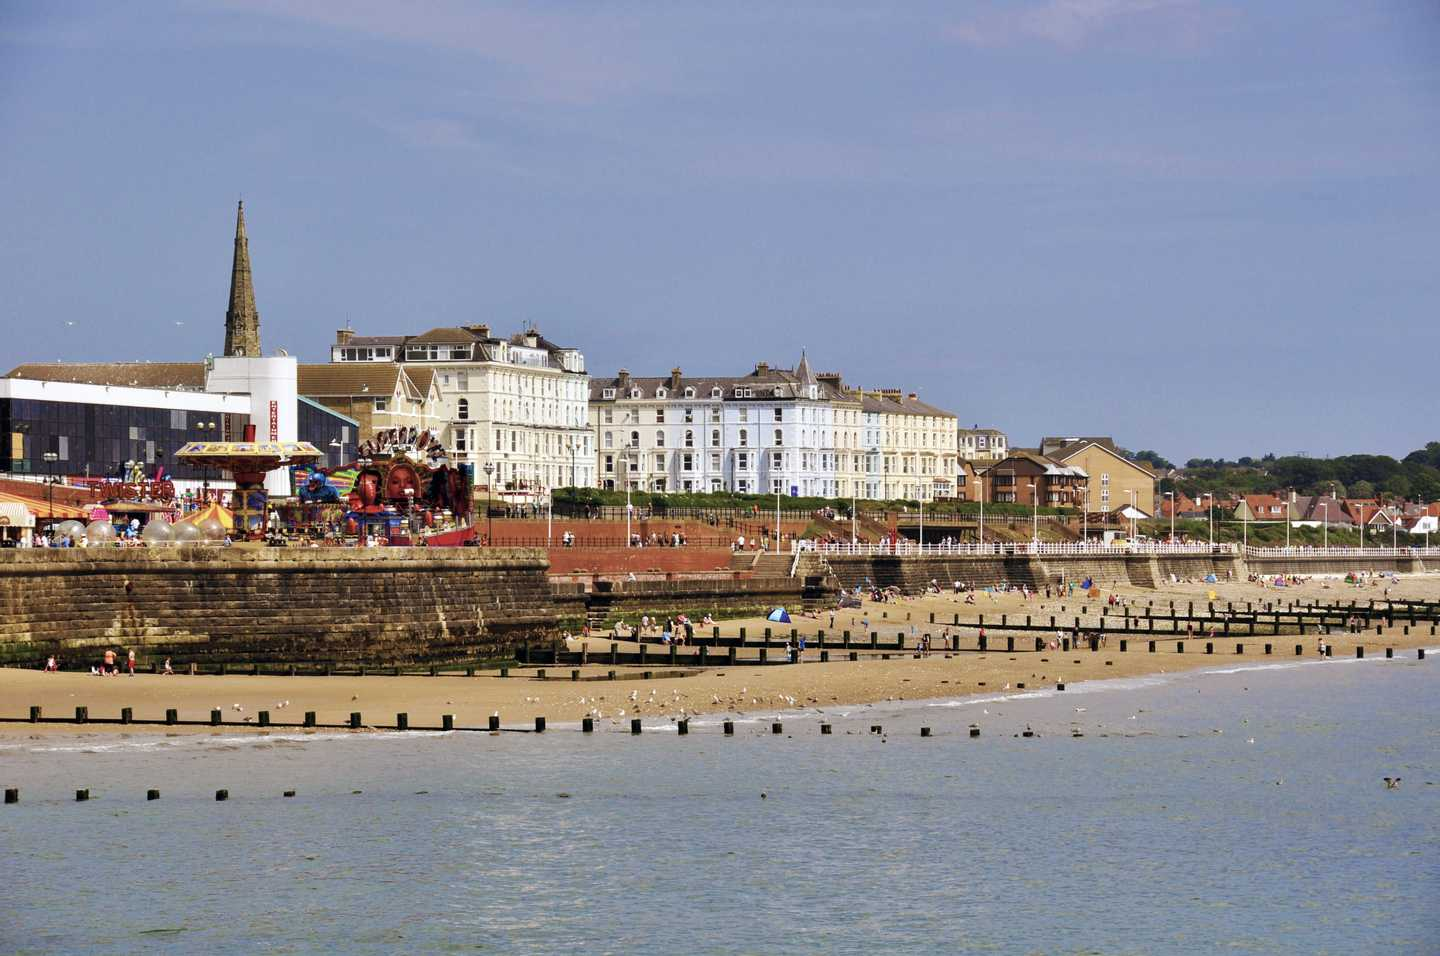 A view of Bridlington Beach